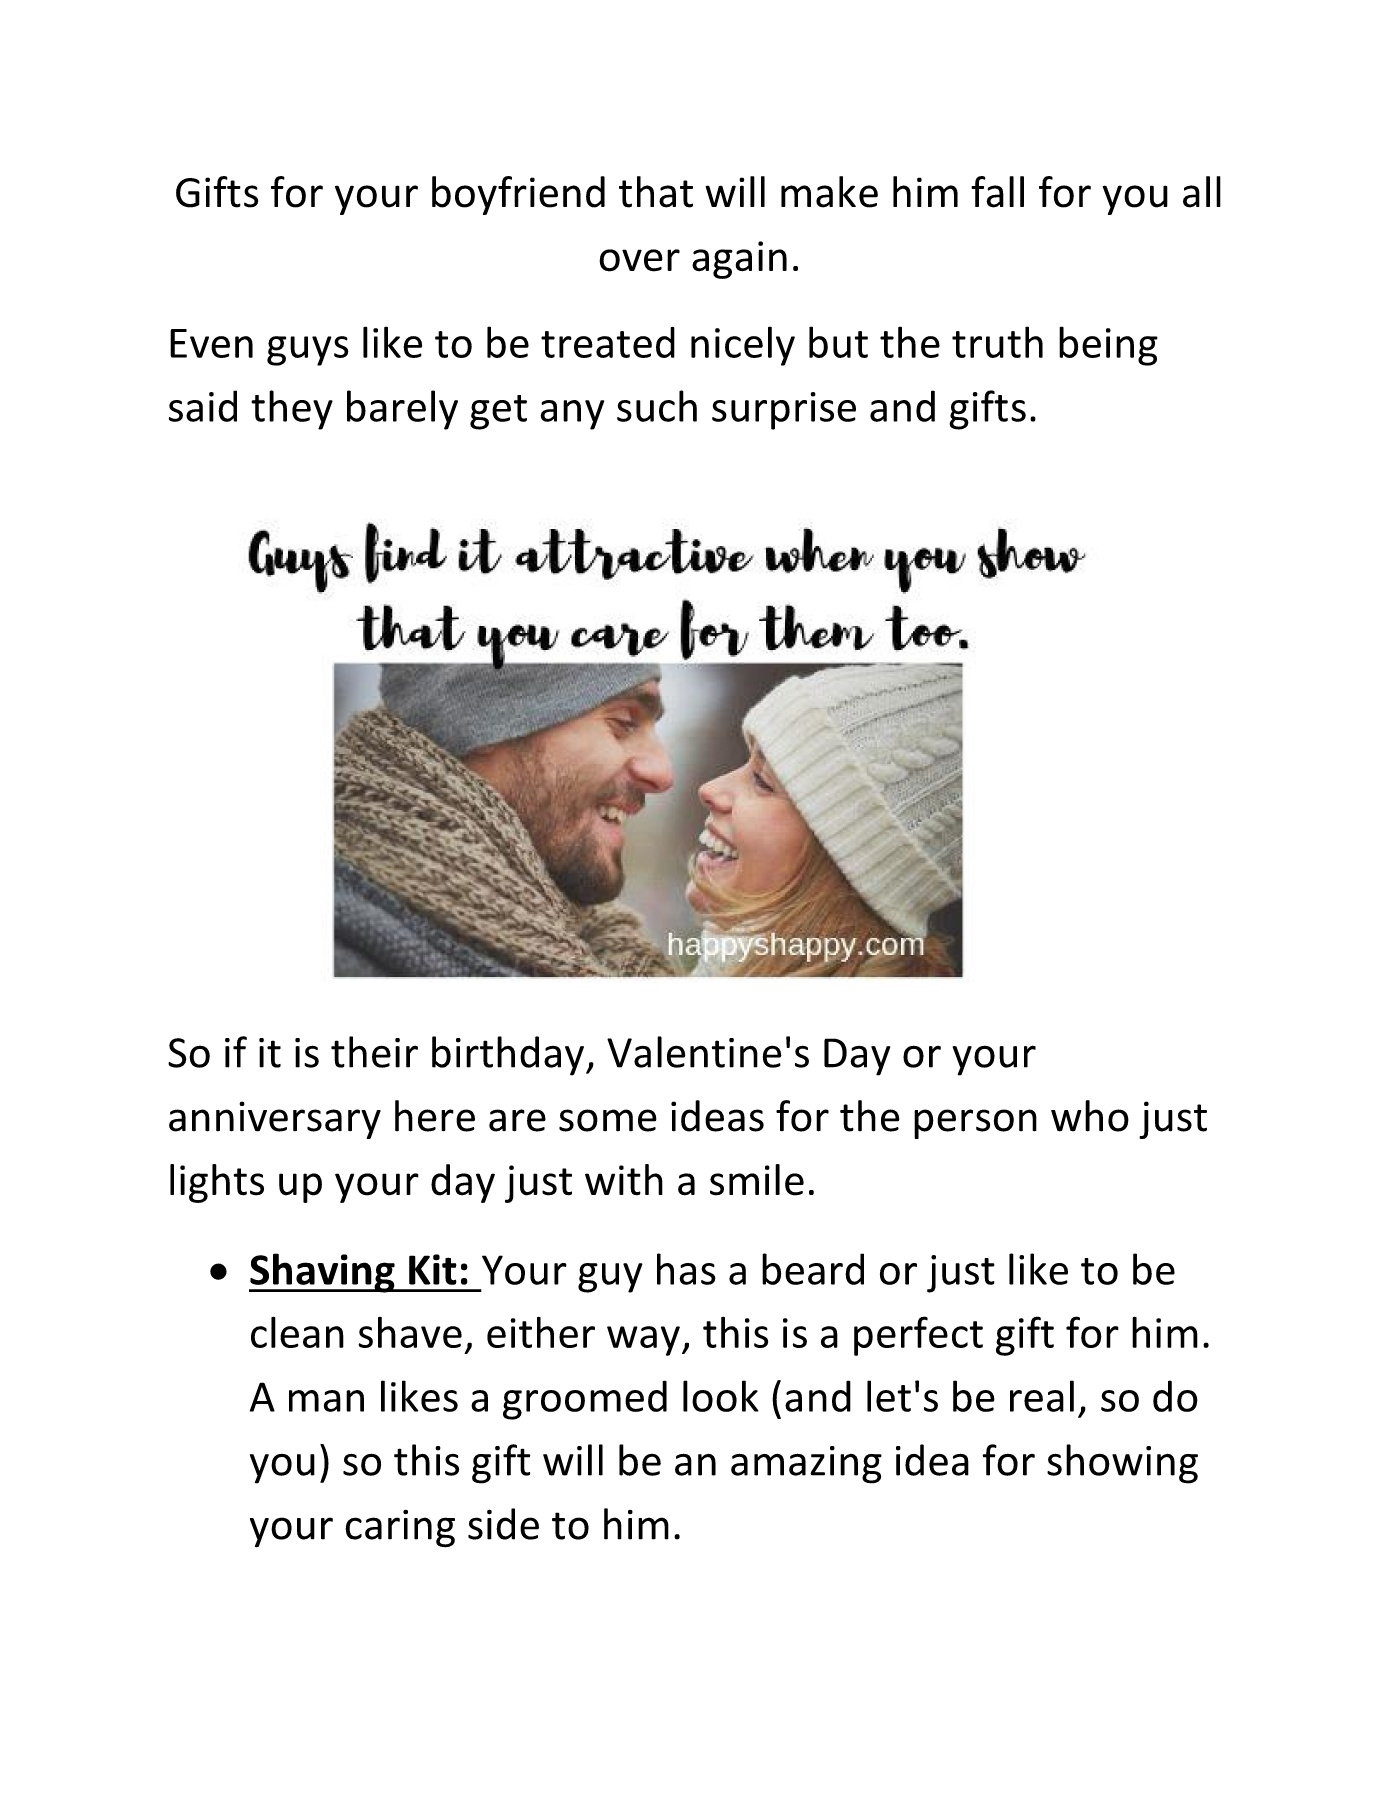 Gifts for your boyfriend that will make him fall for you all over again